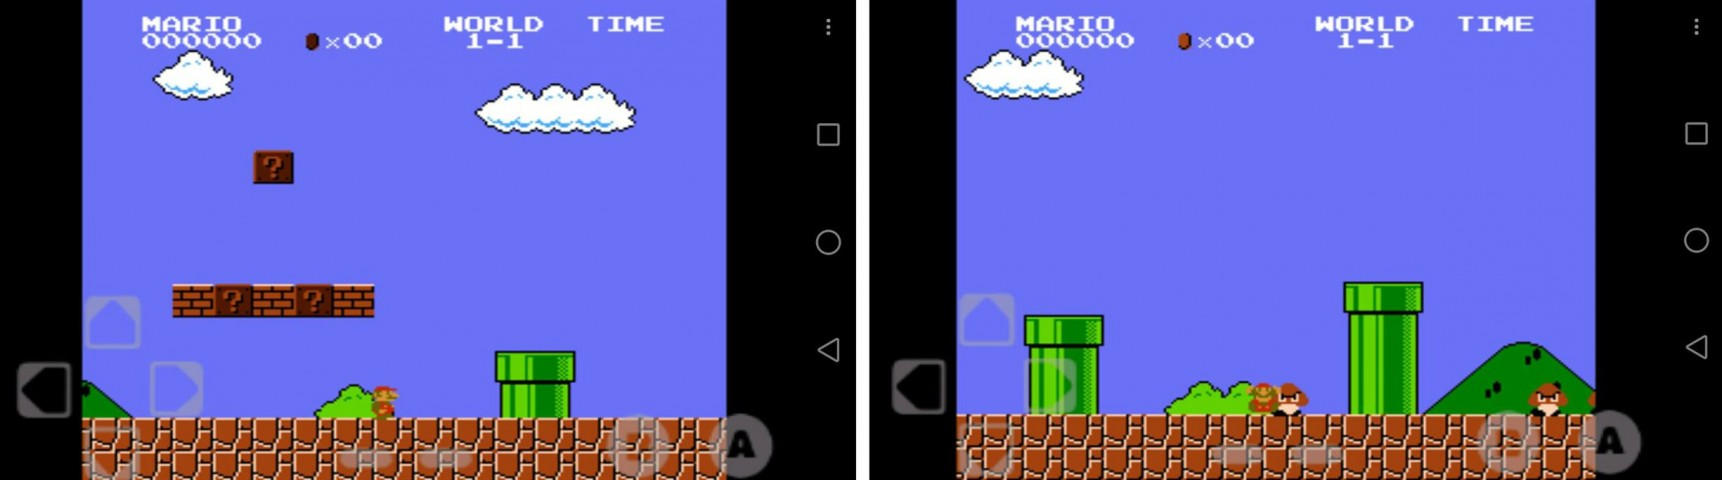 super-mario-bros-apk-download.jpg